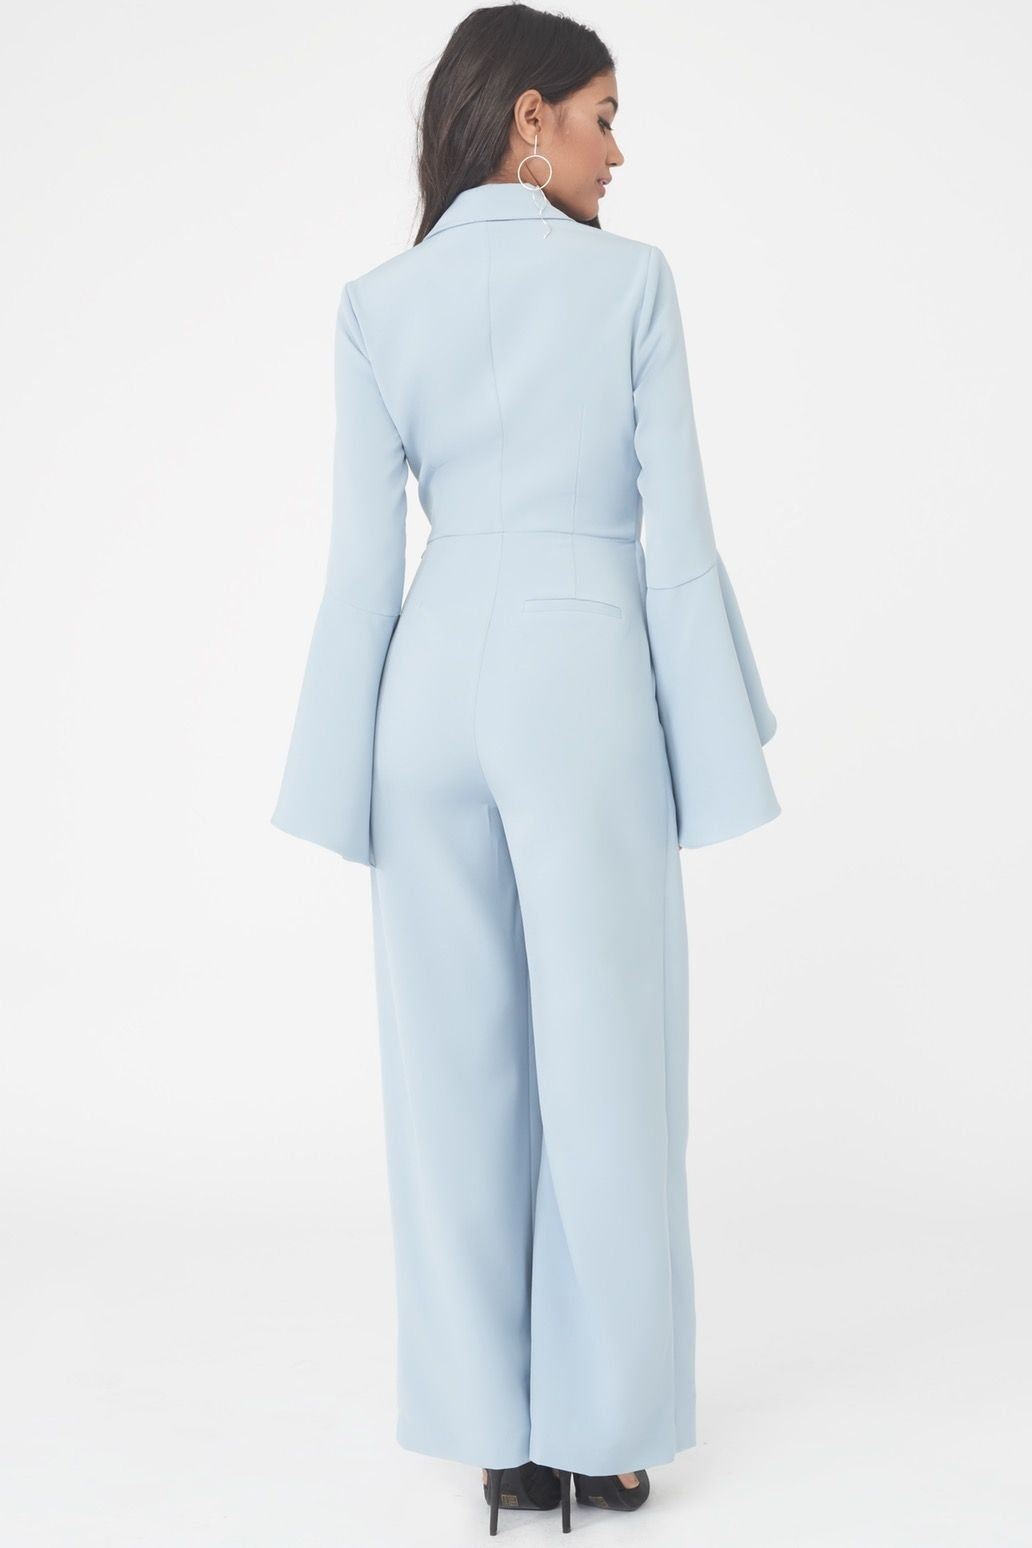 Bell Sleeve Wrap Over Wide Leg Tailored Jumpsuit